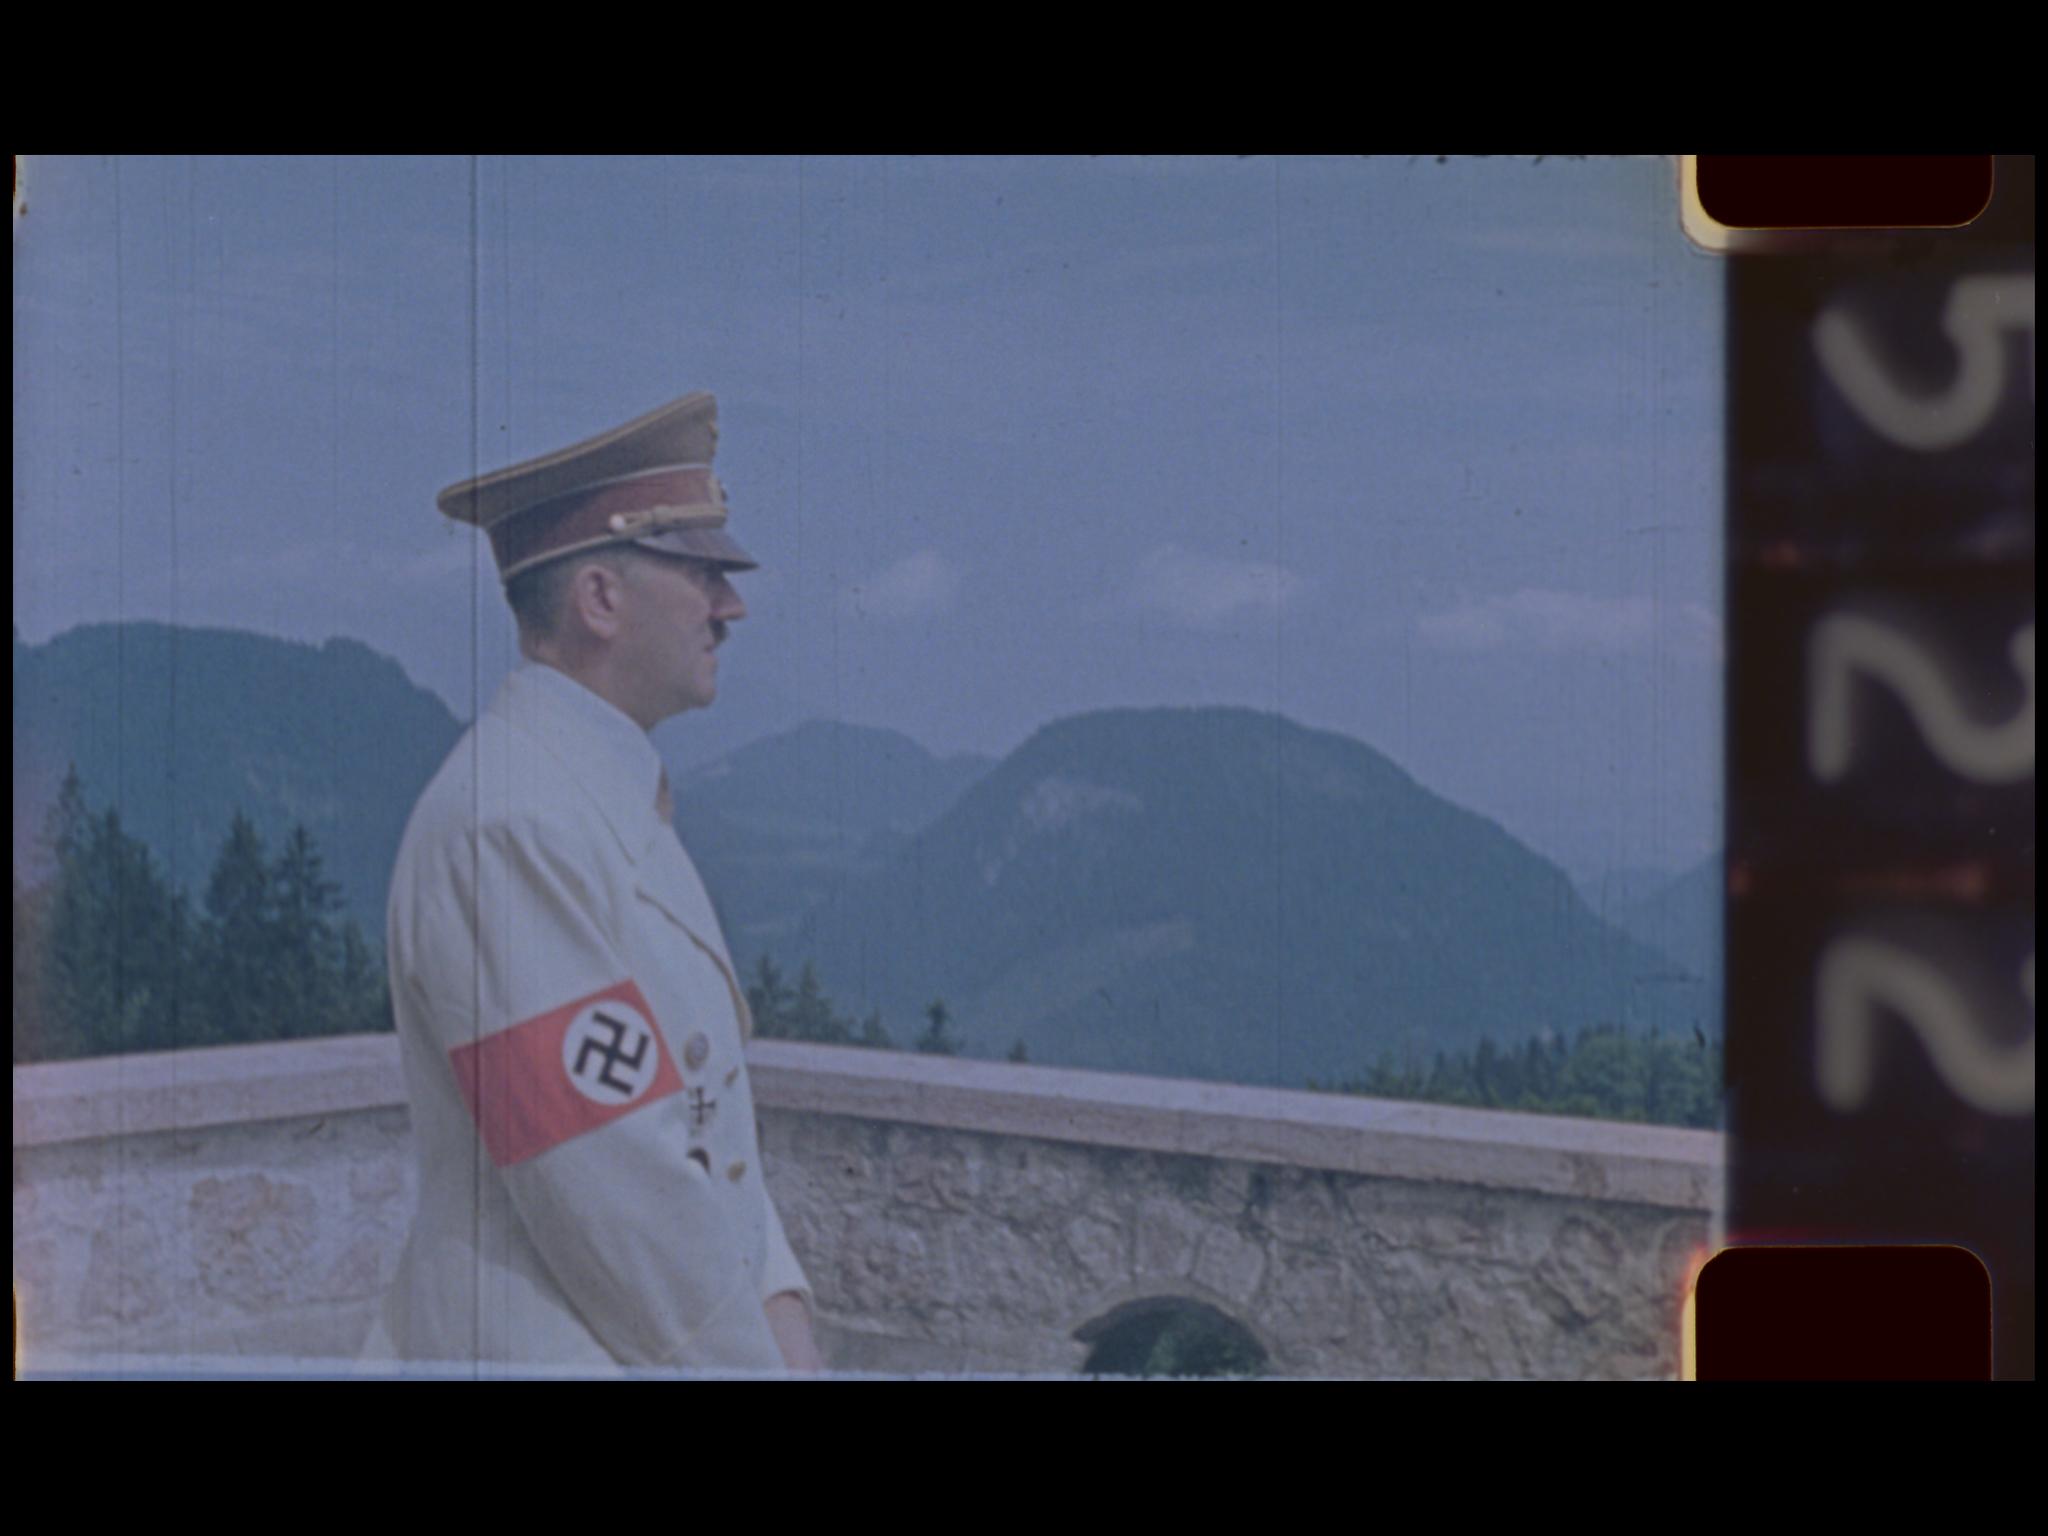 Hitler home movies made by Eva Braun digitized by National